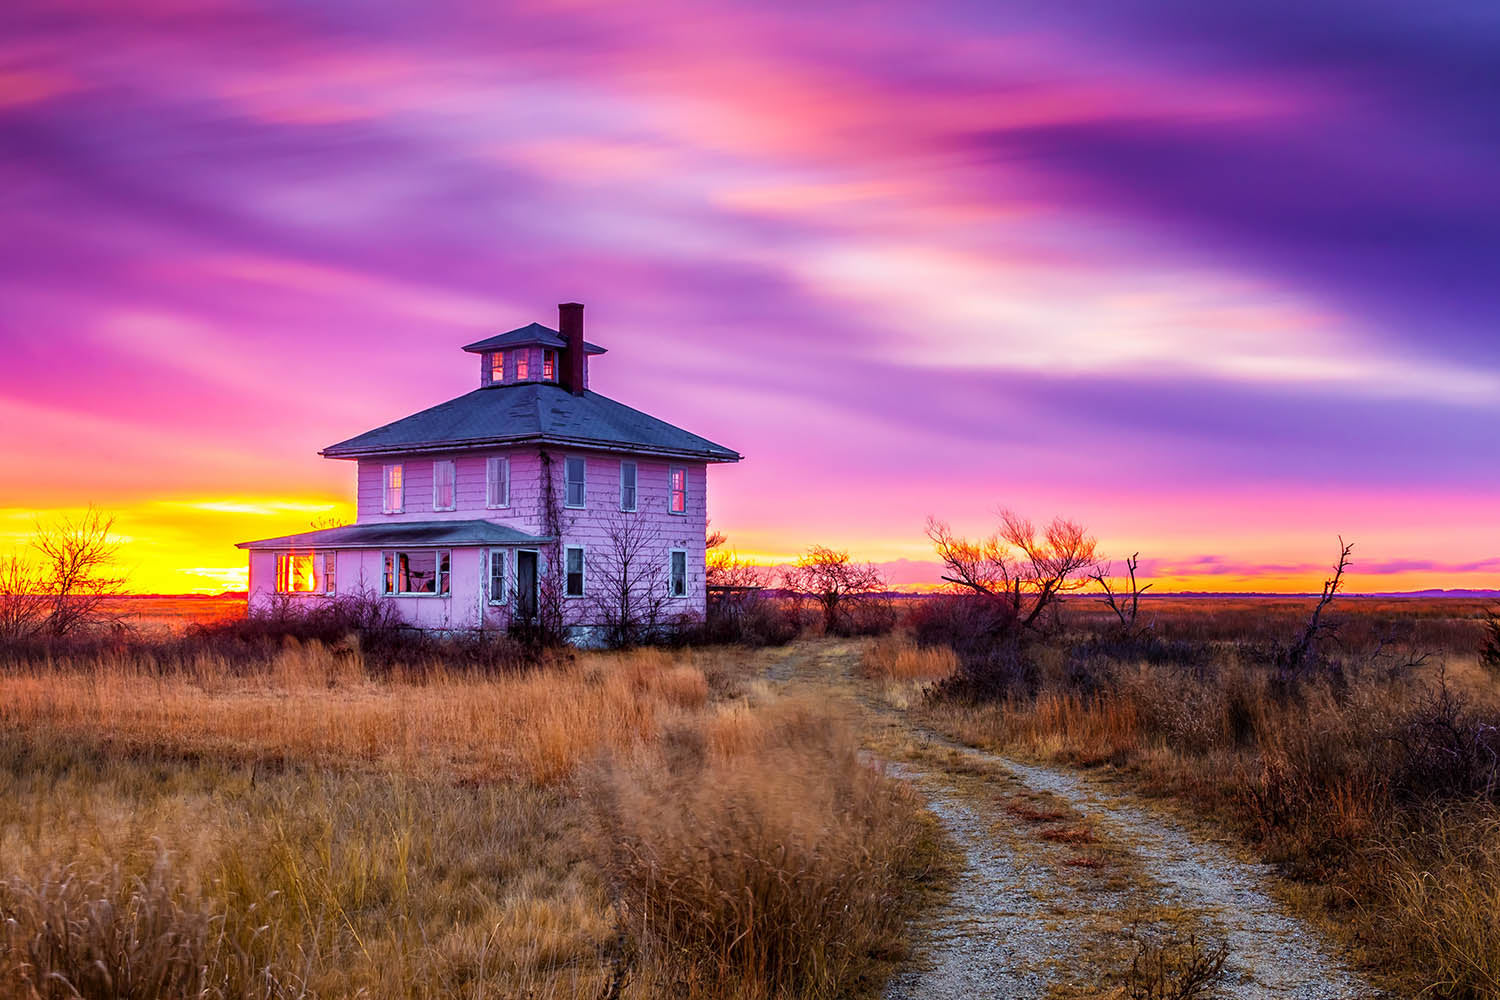 Landscape wall art photography of the iconic Plum Island pink house under a colorful long exposure sunrise